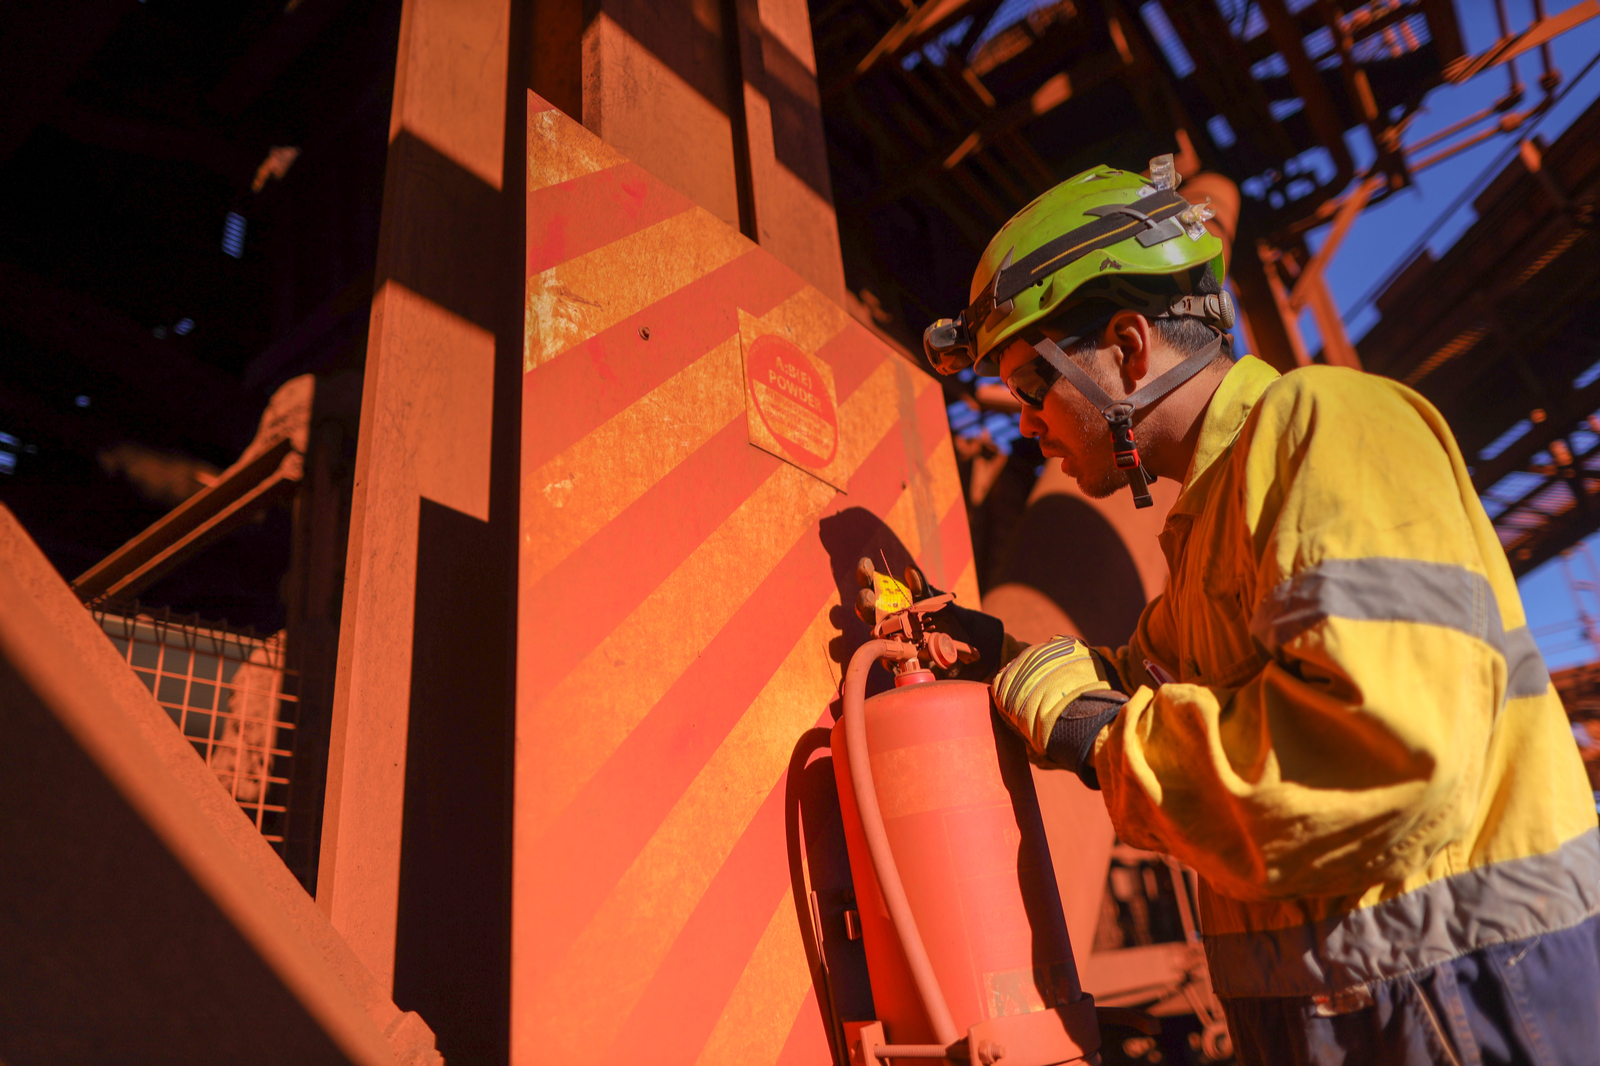 Fire Safety Inspection in Australia